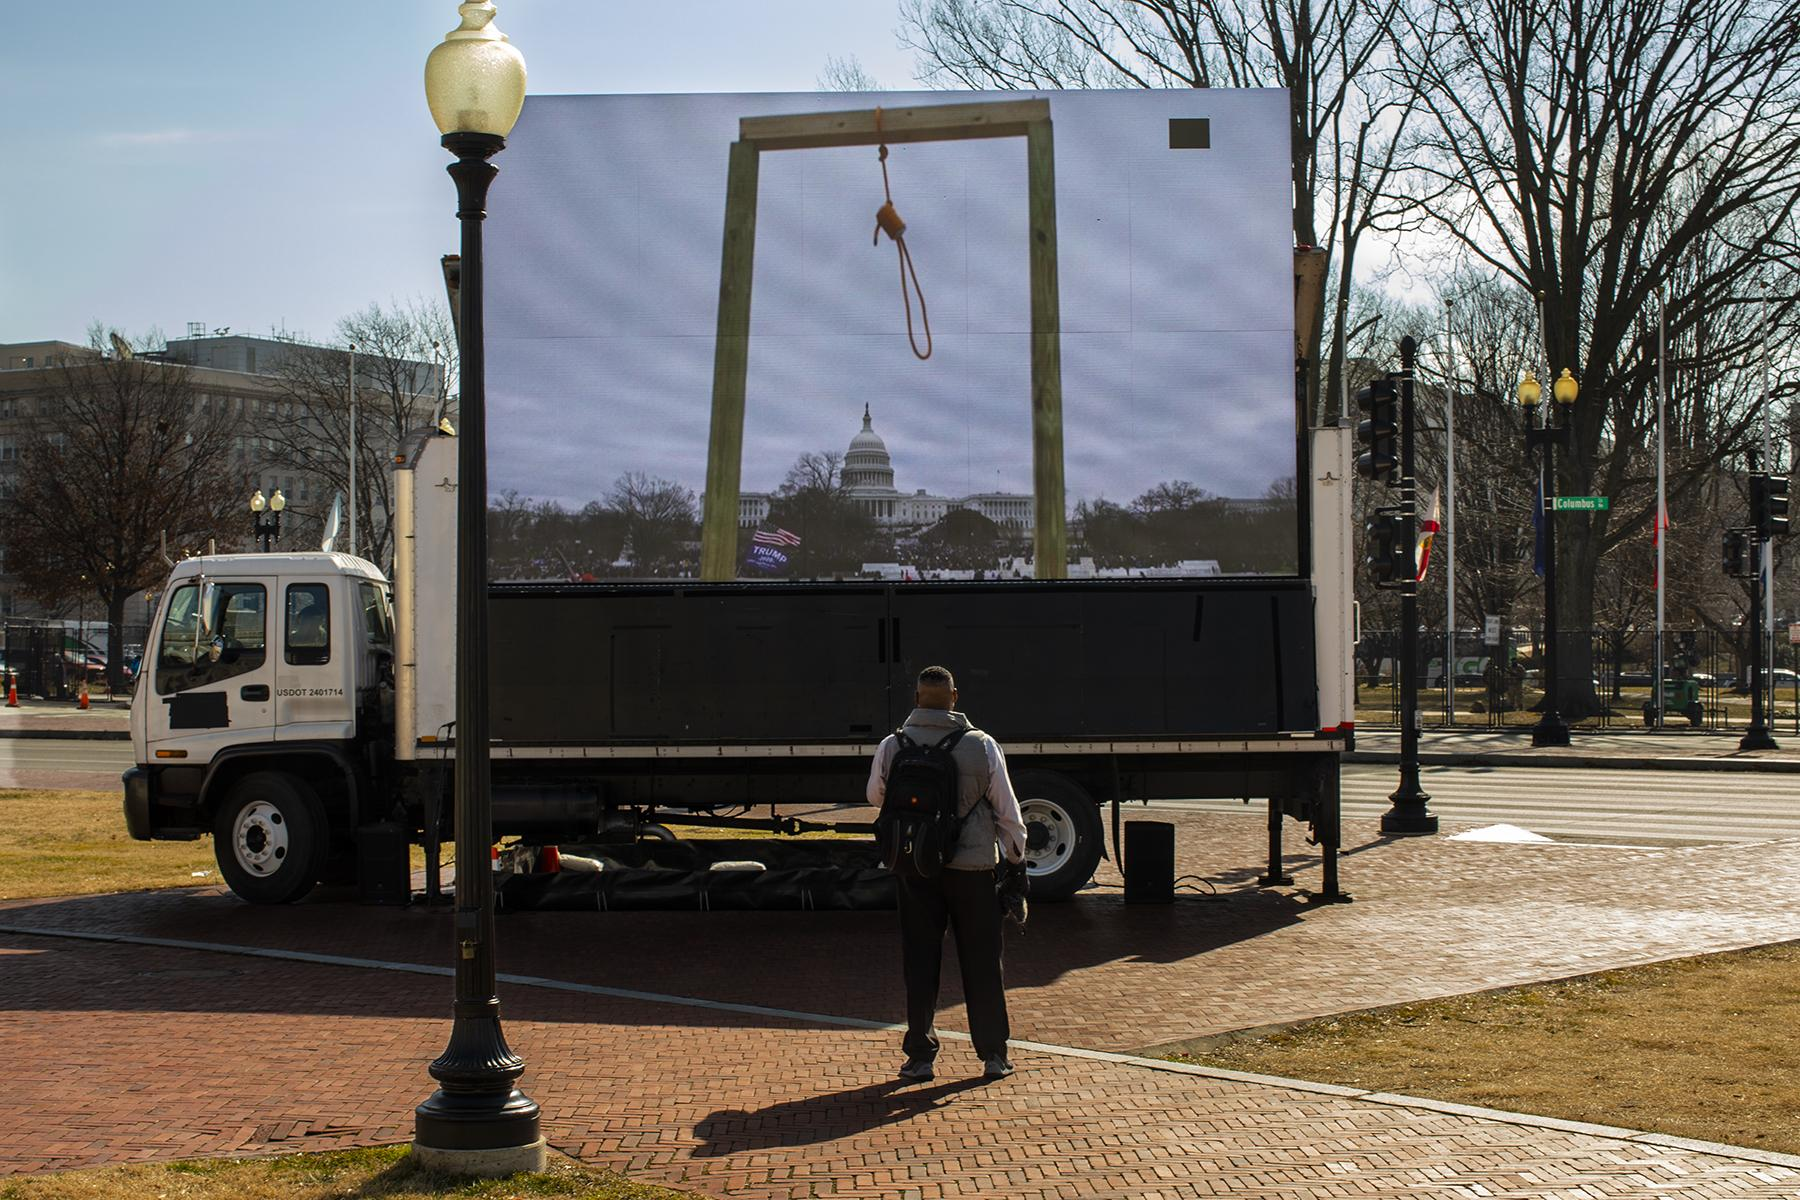 February 9, 2021, A sign truck is parked in front of Union Station, Washington D.C. on the first day of the Senate Impeachment Trial of former president Donald Trump.